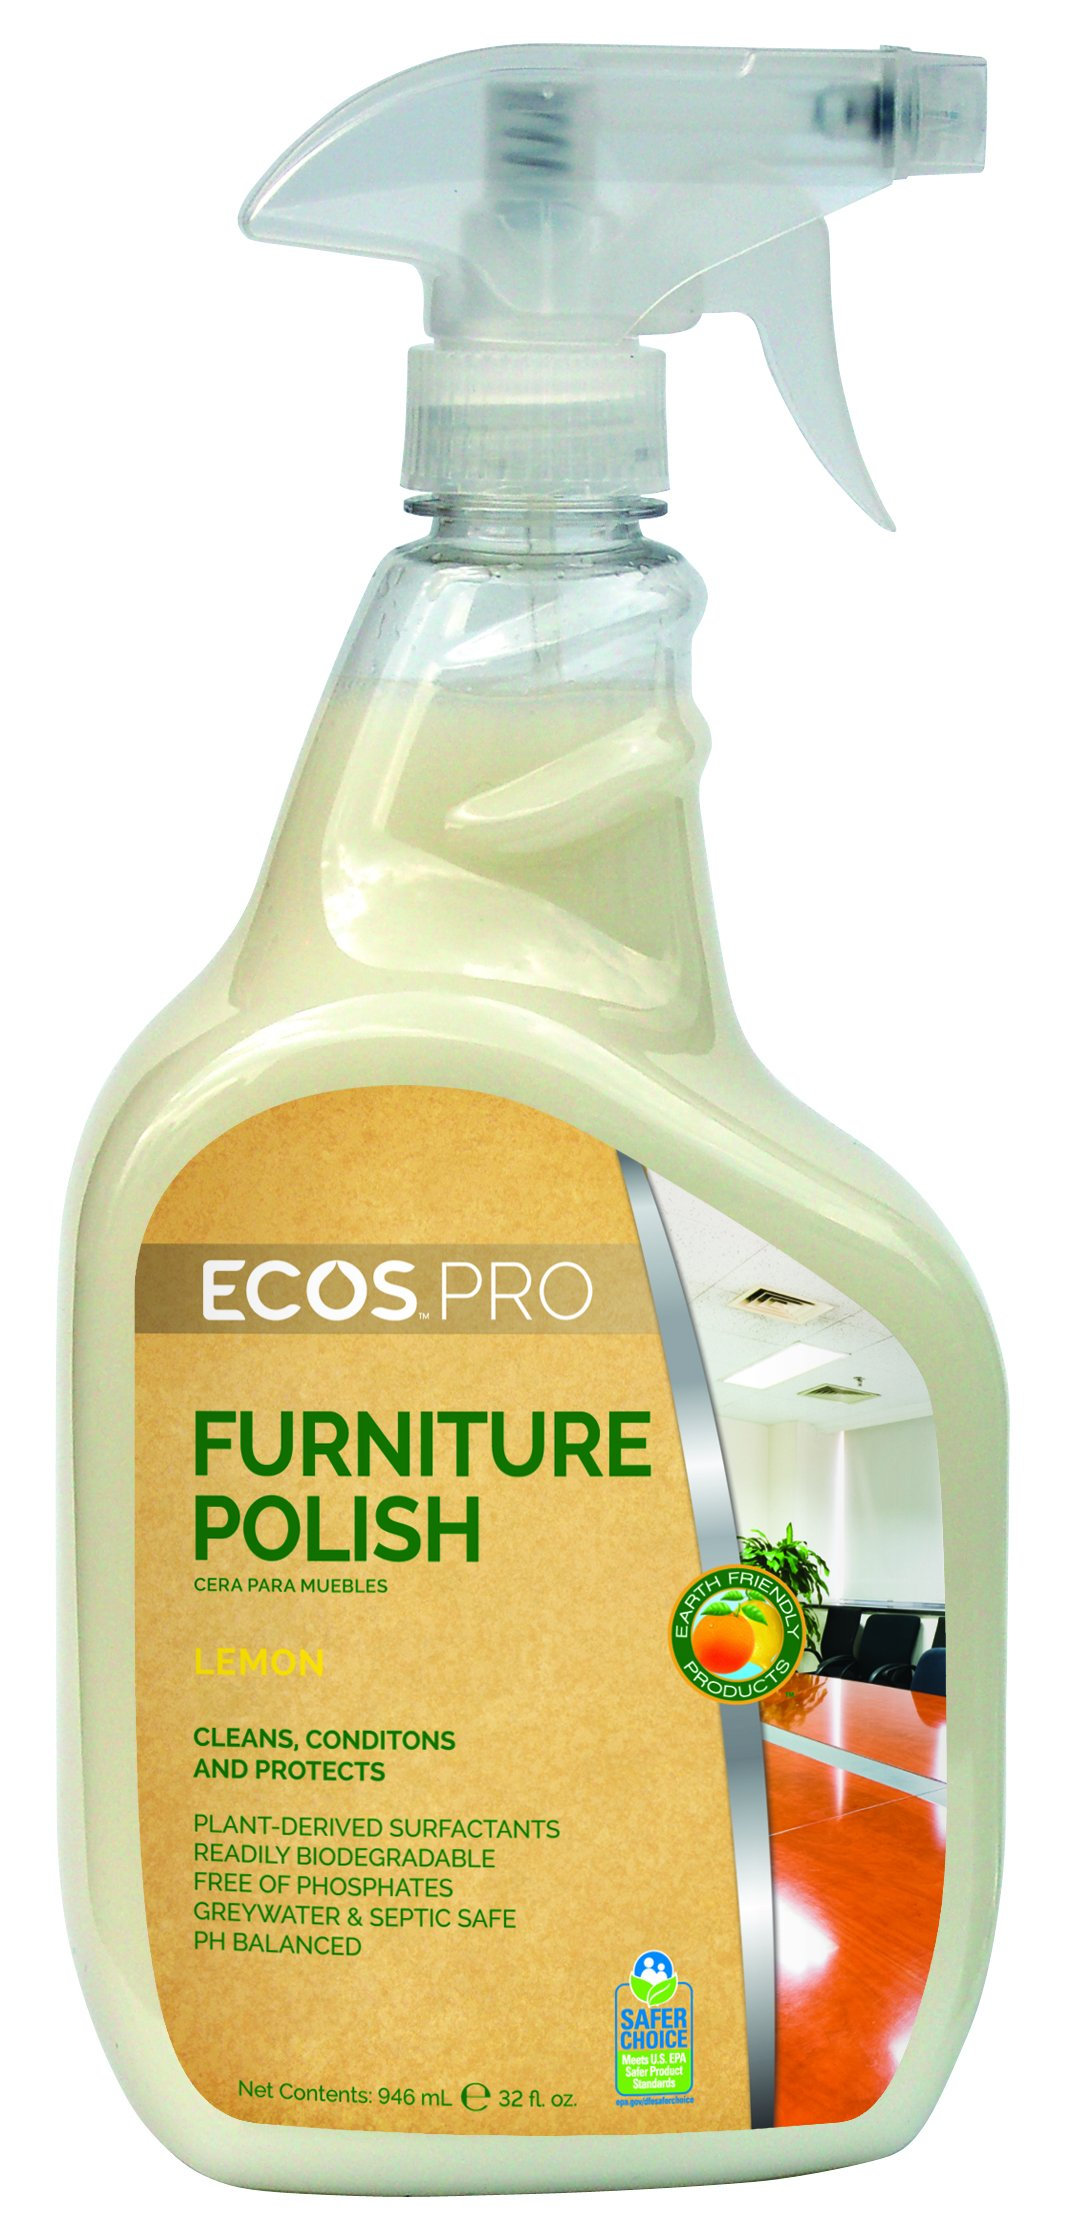 ECOS PRO PL9731/6 Furniture Polish (Pack of 6)